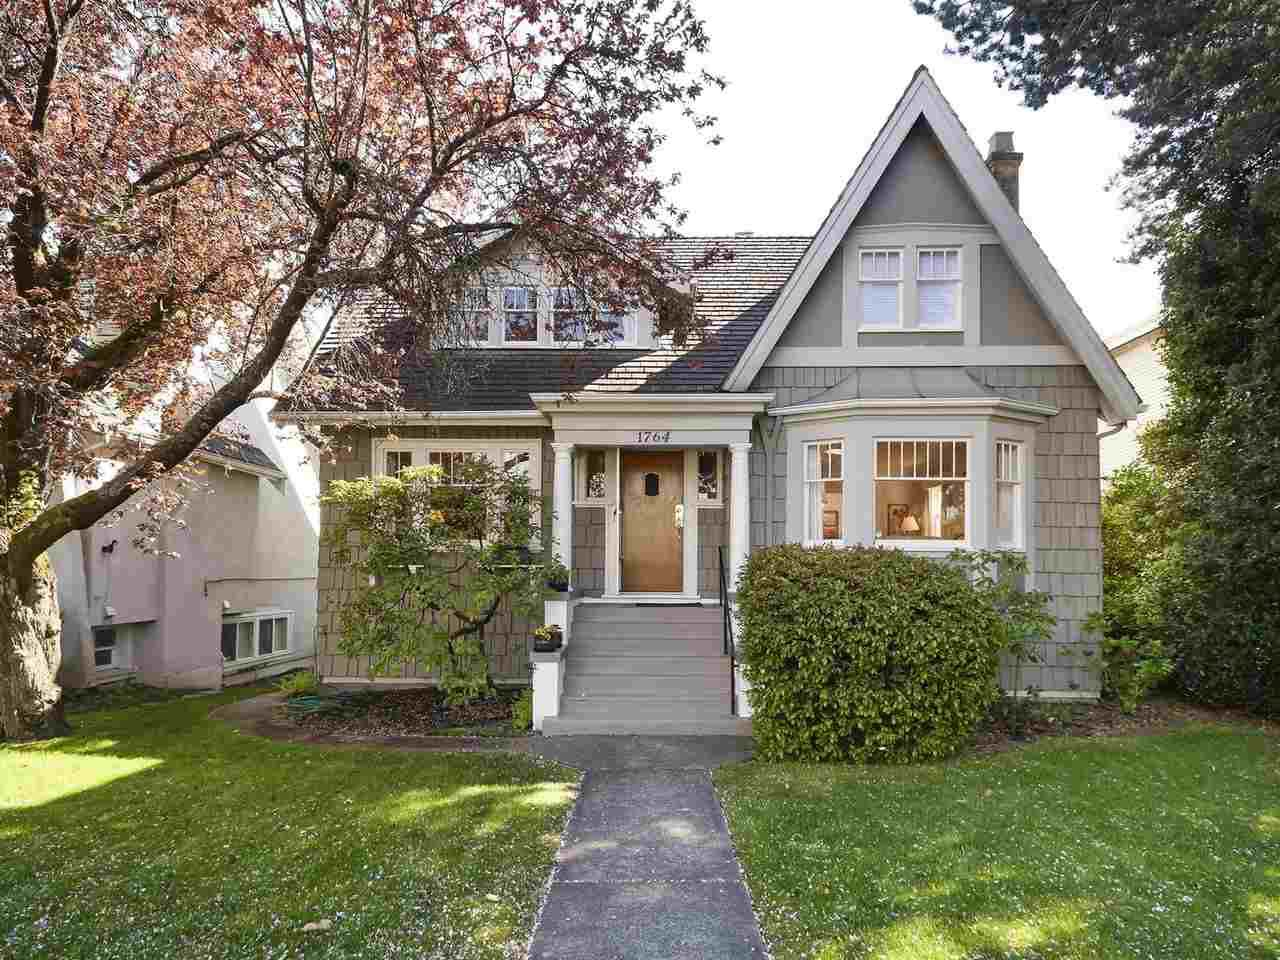 Main Photo: 1764 W 57TH Avenue in Vancouver: South Granville House for sale (Vancouver West)  : MLS®# R2366542